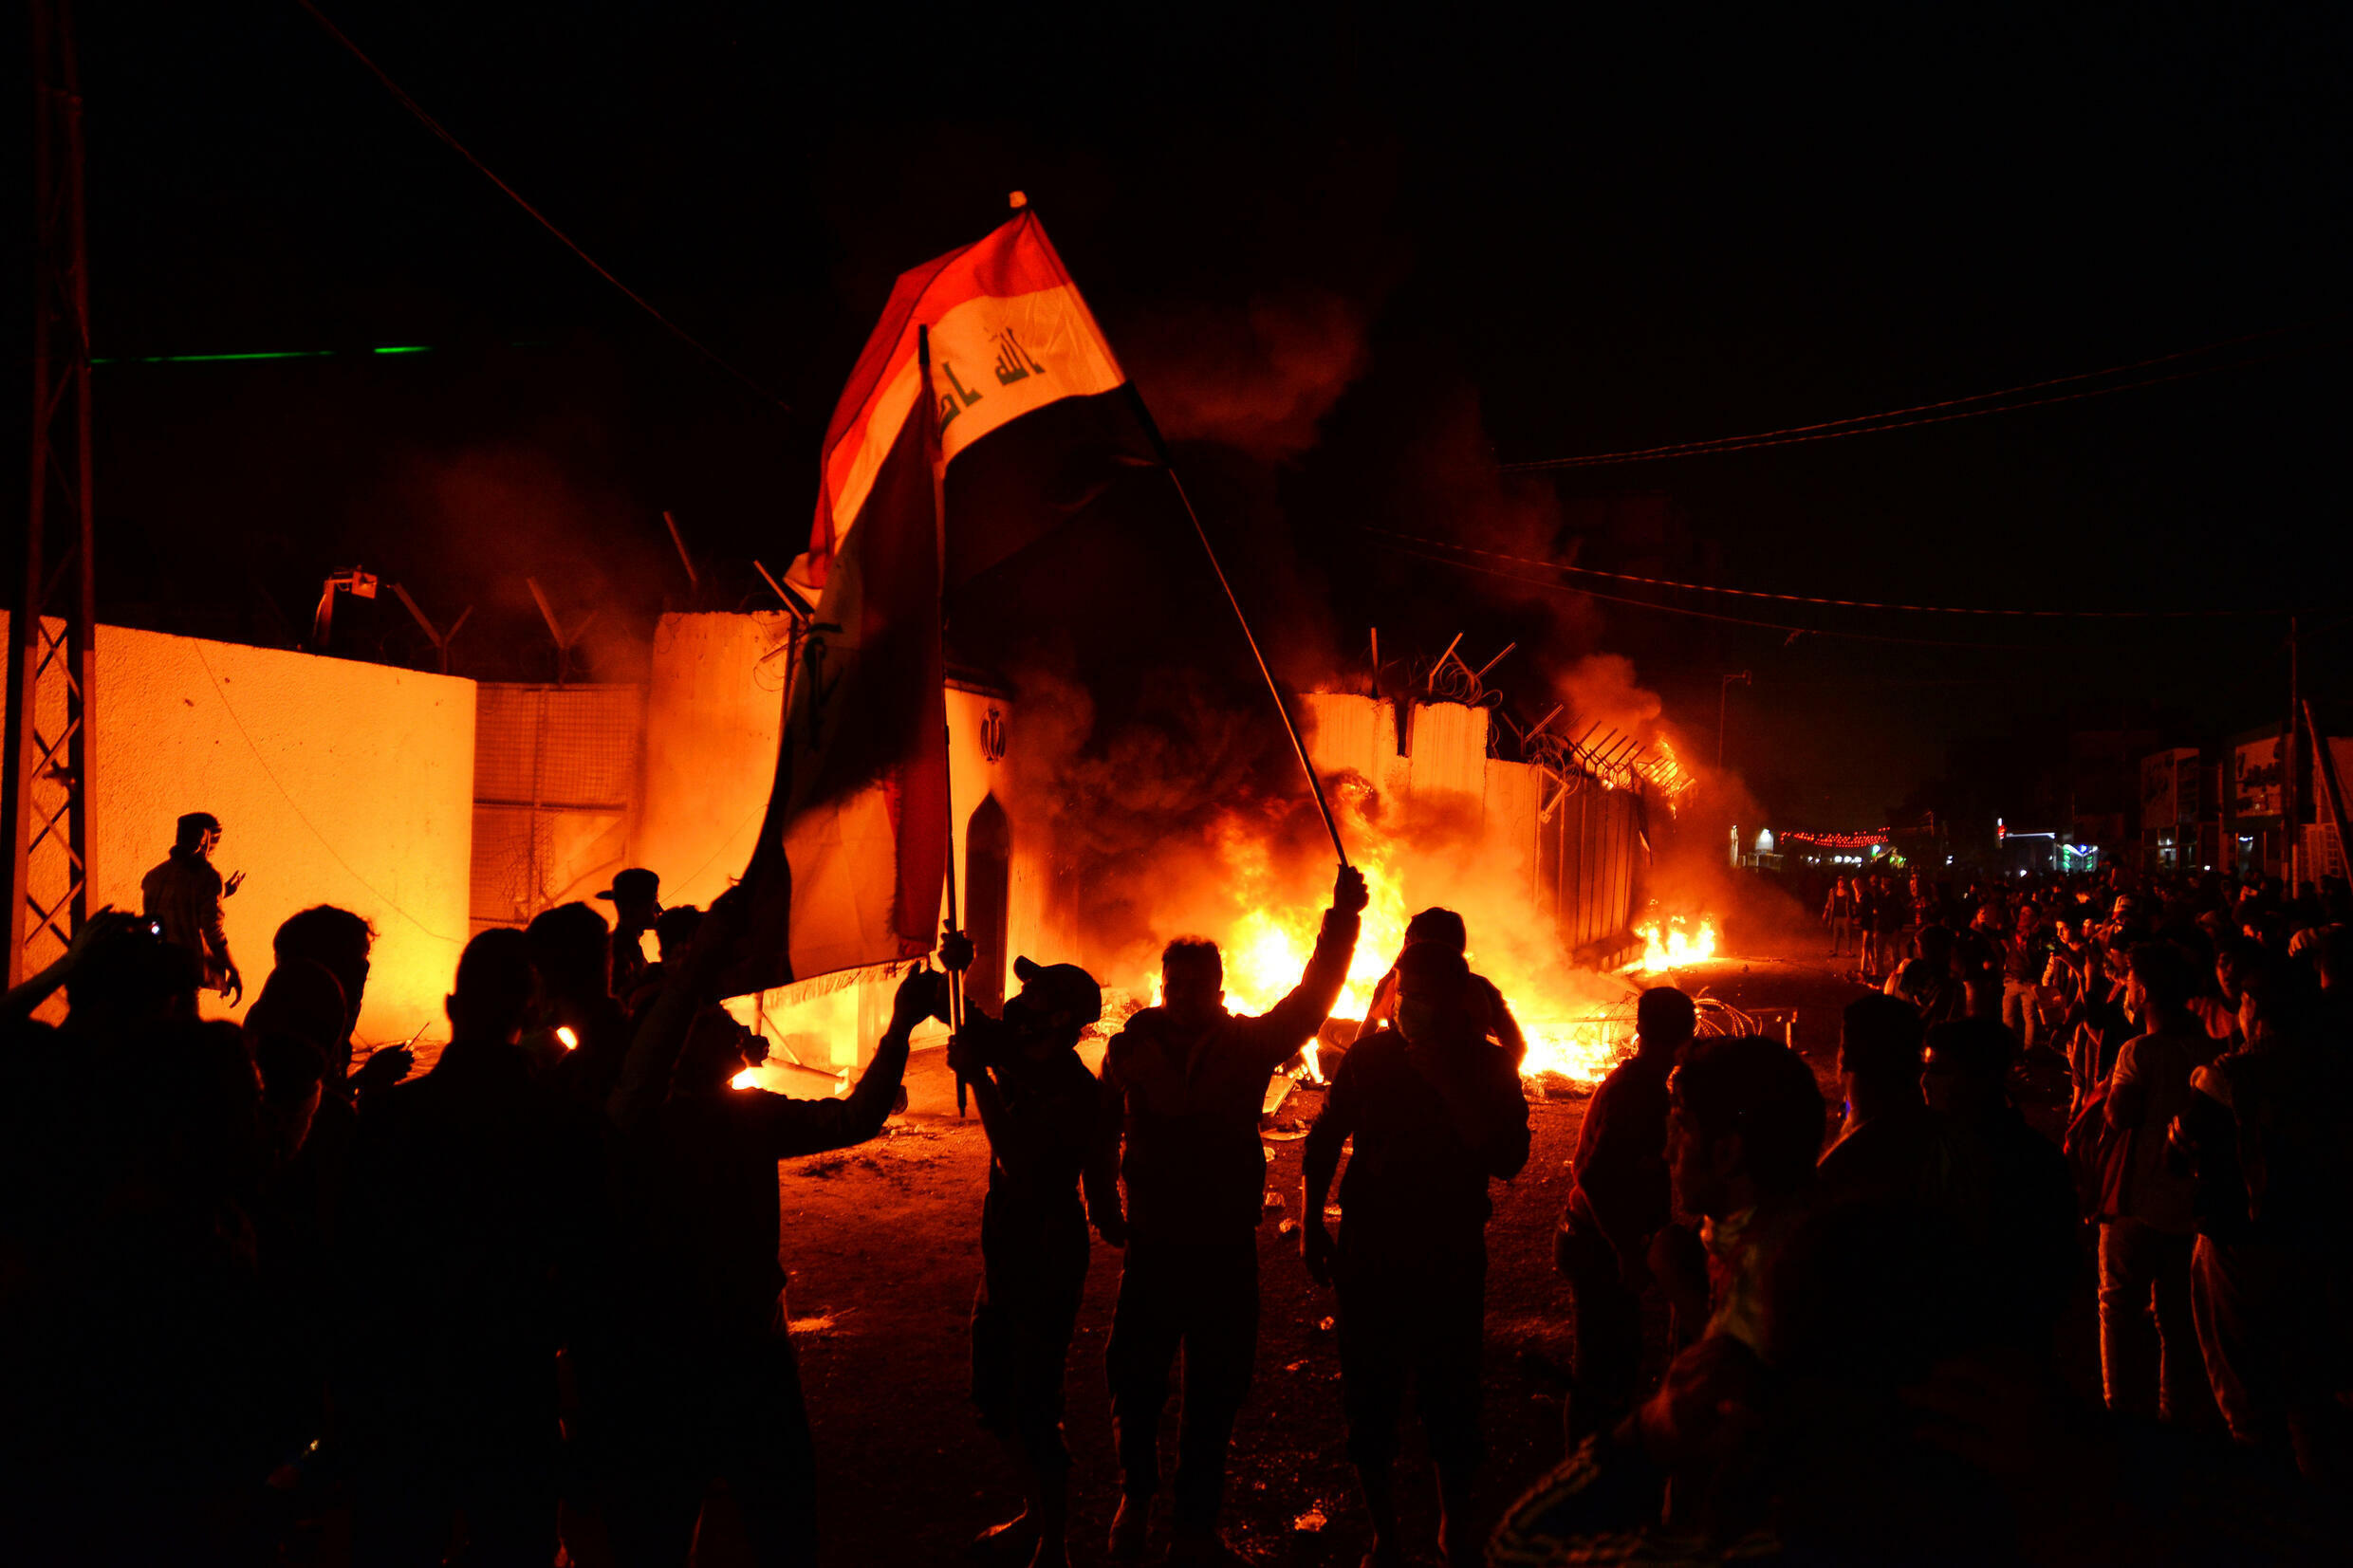 In November 2019, angry protesters attacked and torched the Iranian consulate in the southern city of Najaf